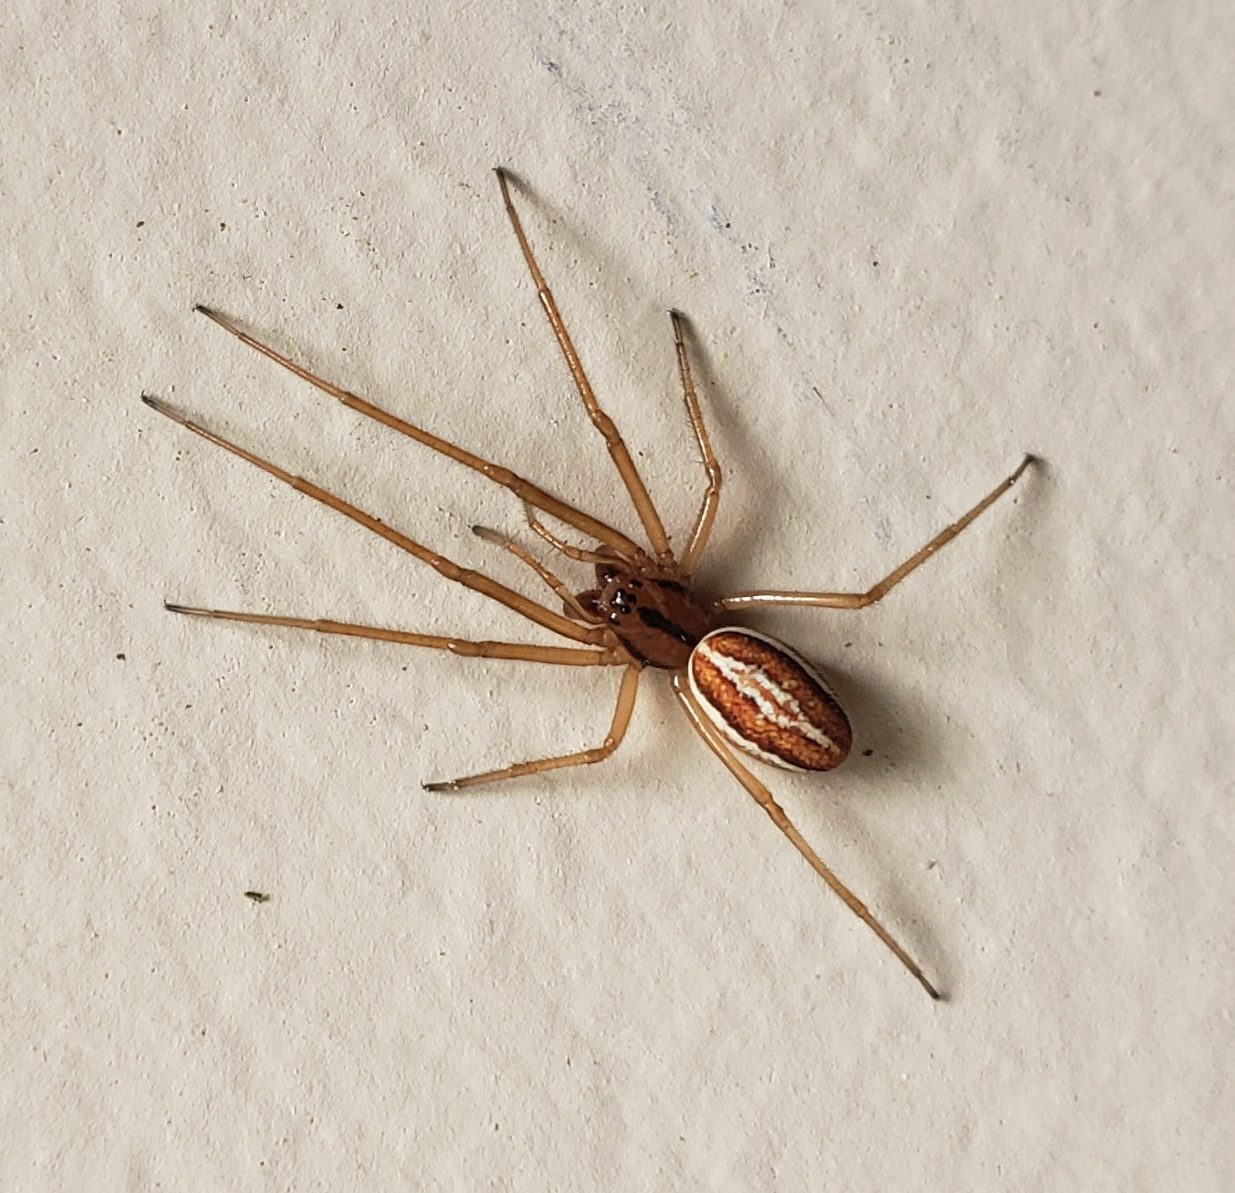 Picture of Pachygnatha (Thick-jawed Orb-weavers) - Dorsal